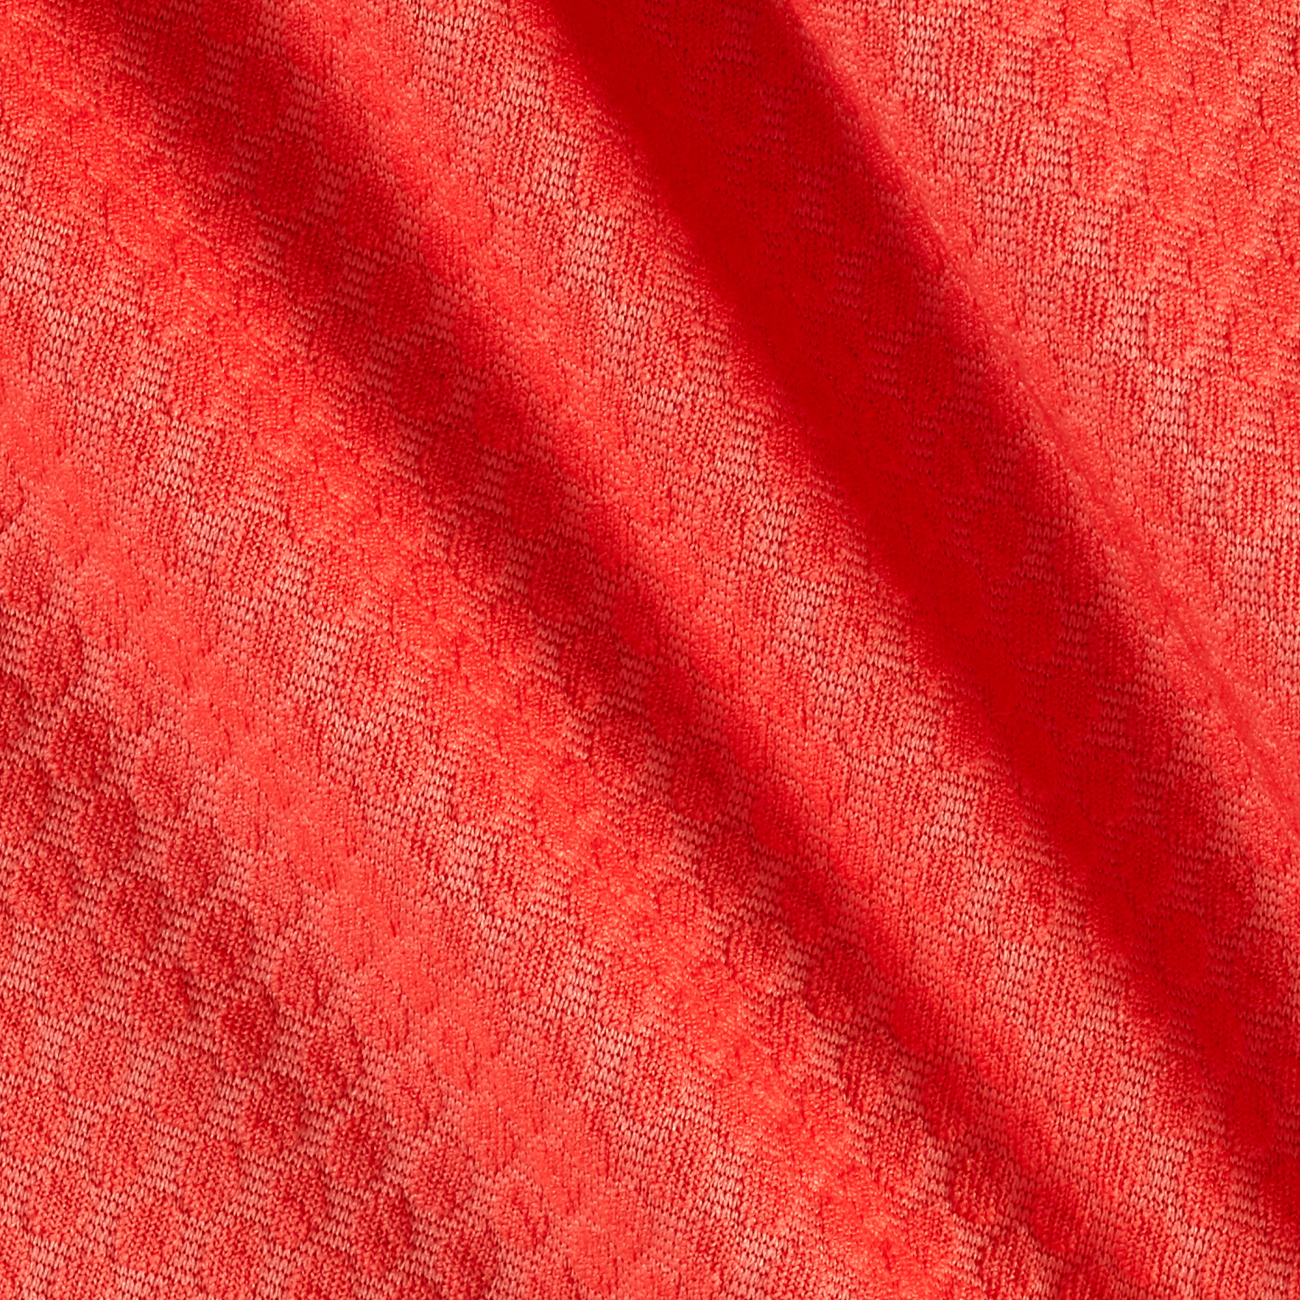 Honeycomb Double Knit Coral Fabric by Neiman in USA